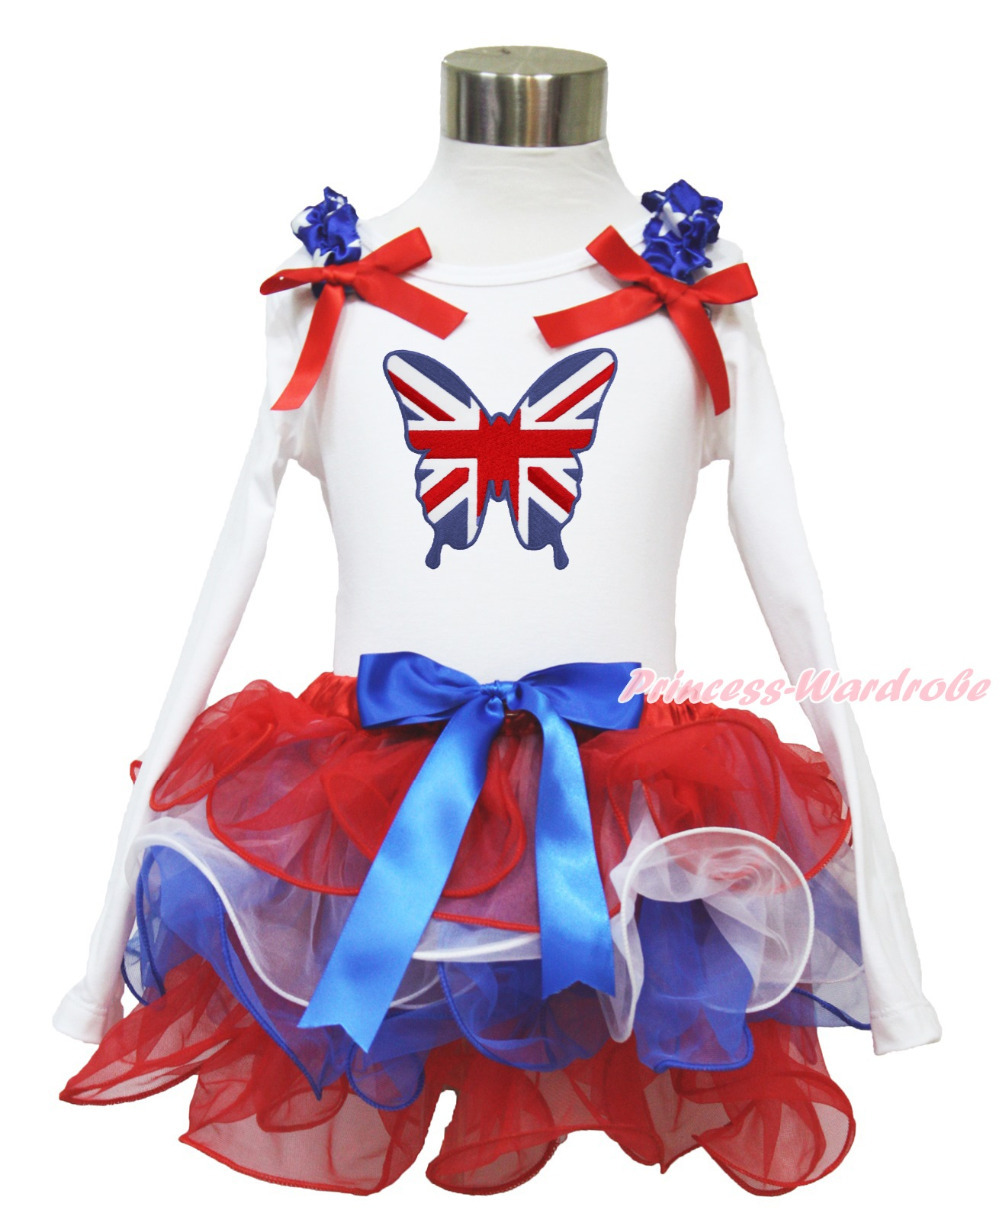 4th July British Butterfly White Long Sleeves Pettitop Red White Blue Petal Pettiskirt NB-8Y MAMH223 pumpkin print white pettitop coral petal skirt nb 8year baby girl mamh241